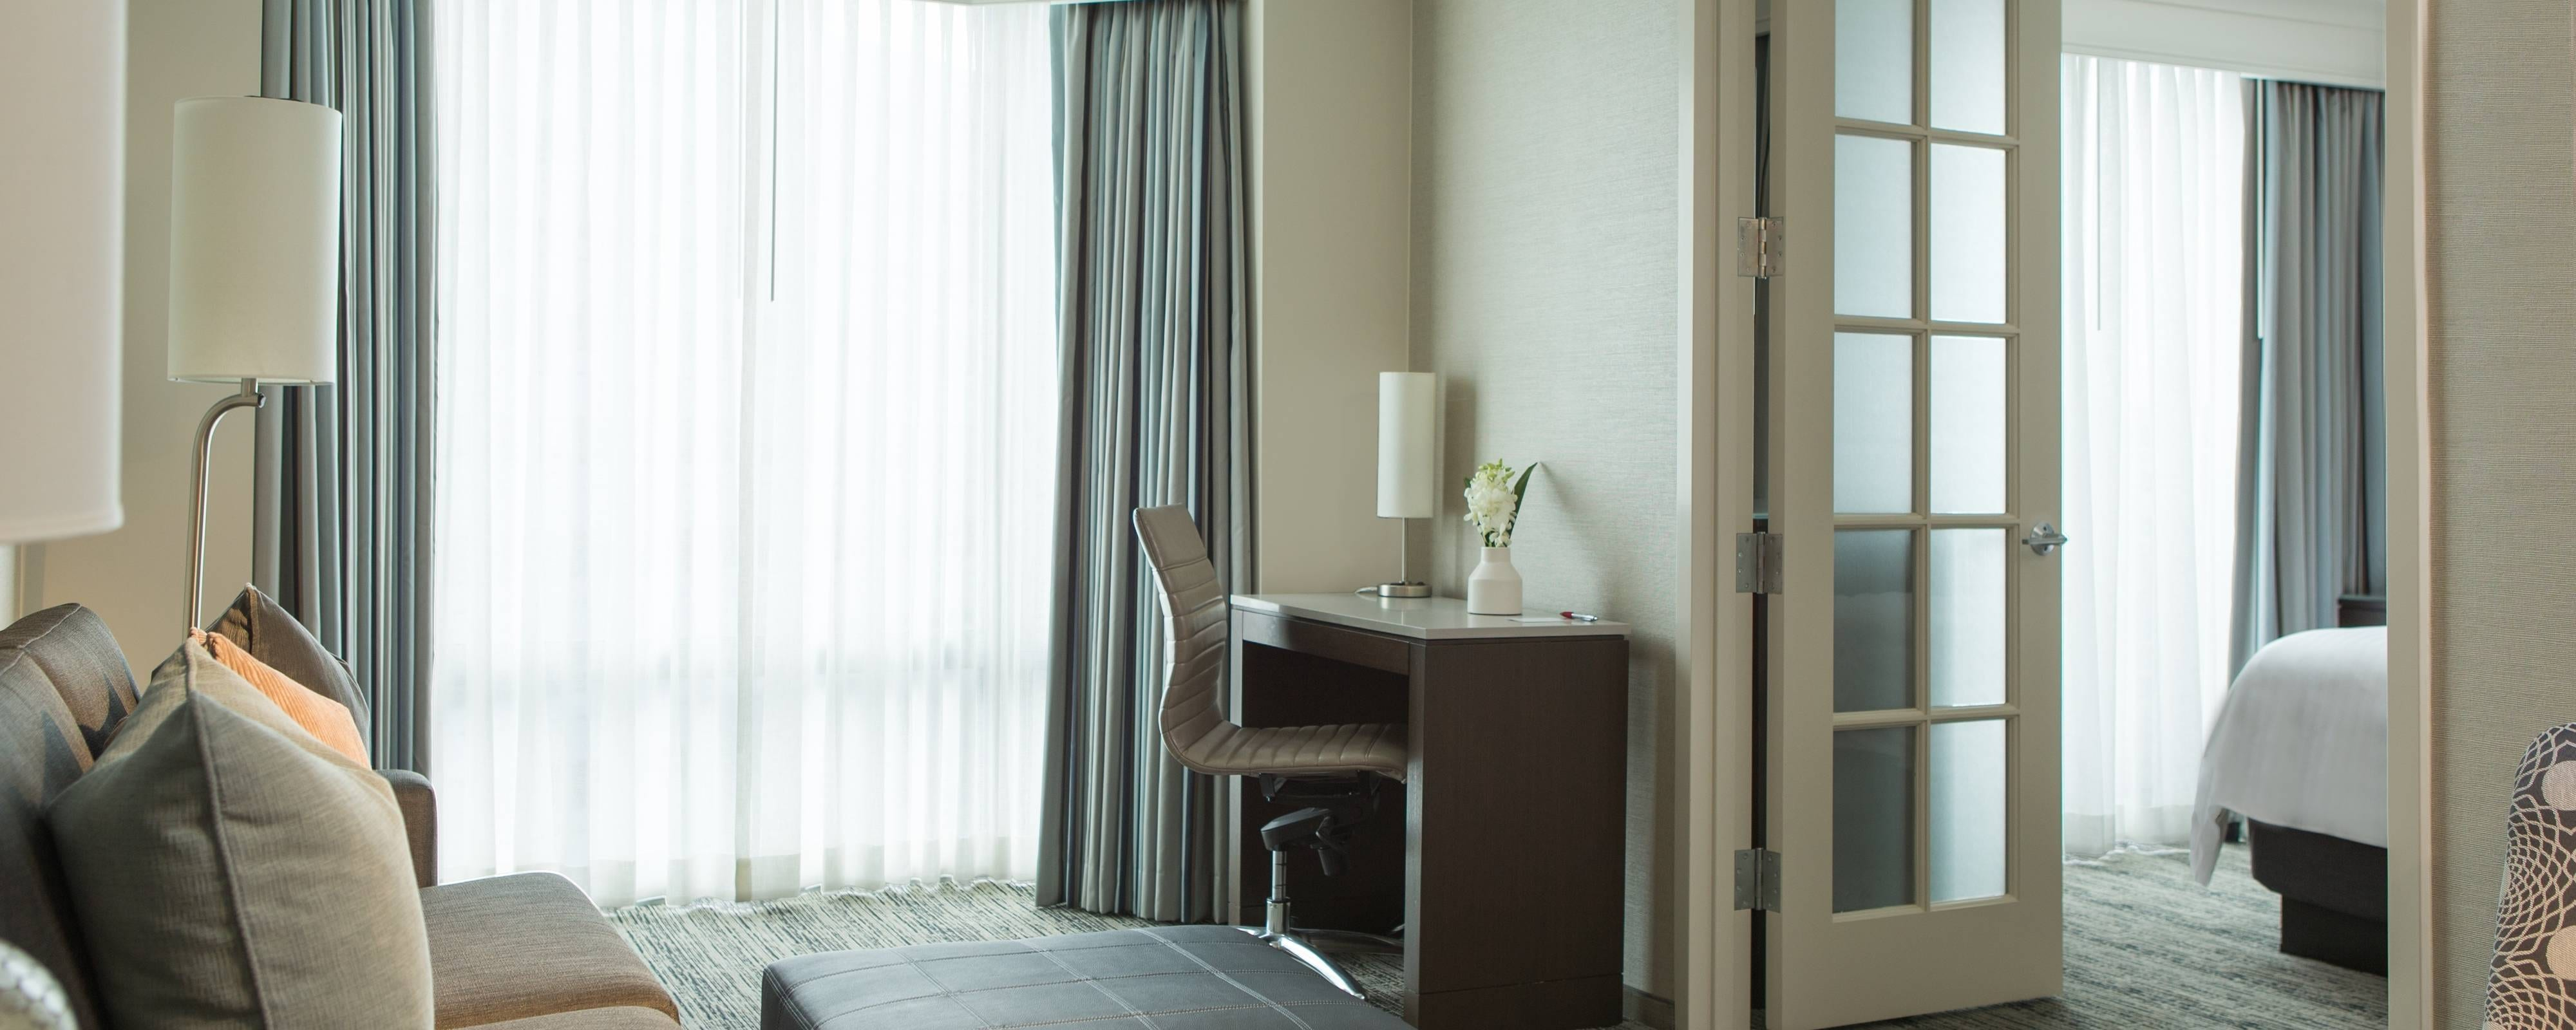 All-Suite Downers Grove Hotels | Chicago Marriott Suites